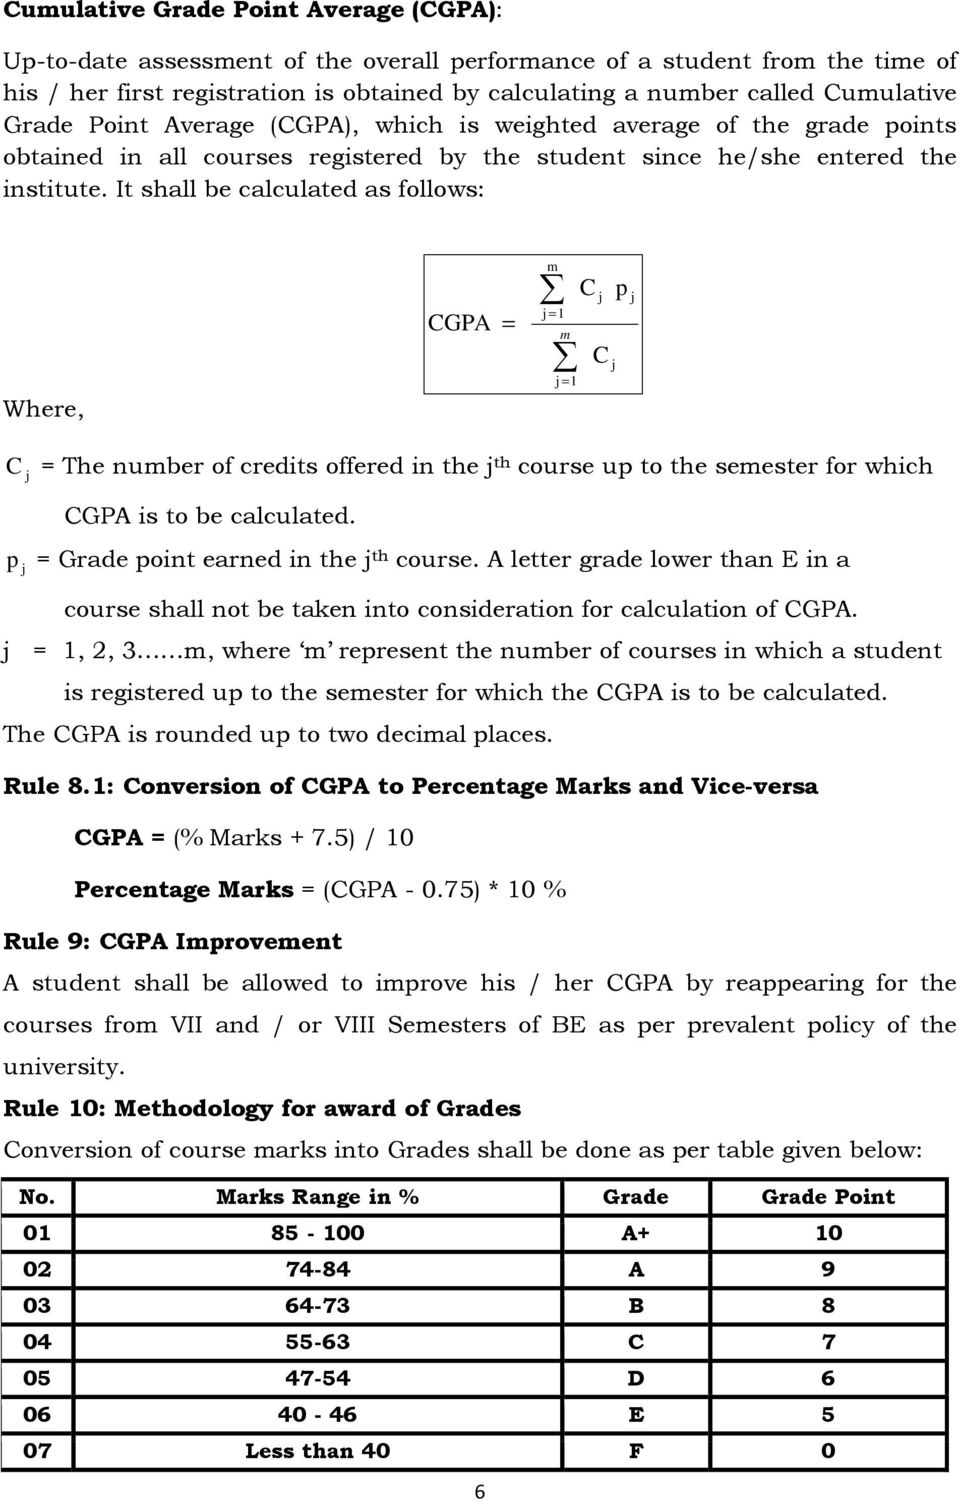 It shall be calculated as follows: Where, CGPA m j = 1 = m j = 1 C j C j p j C j = The number of credits offered in the j th course up to the semester for which CGPA is to be calculated.